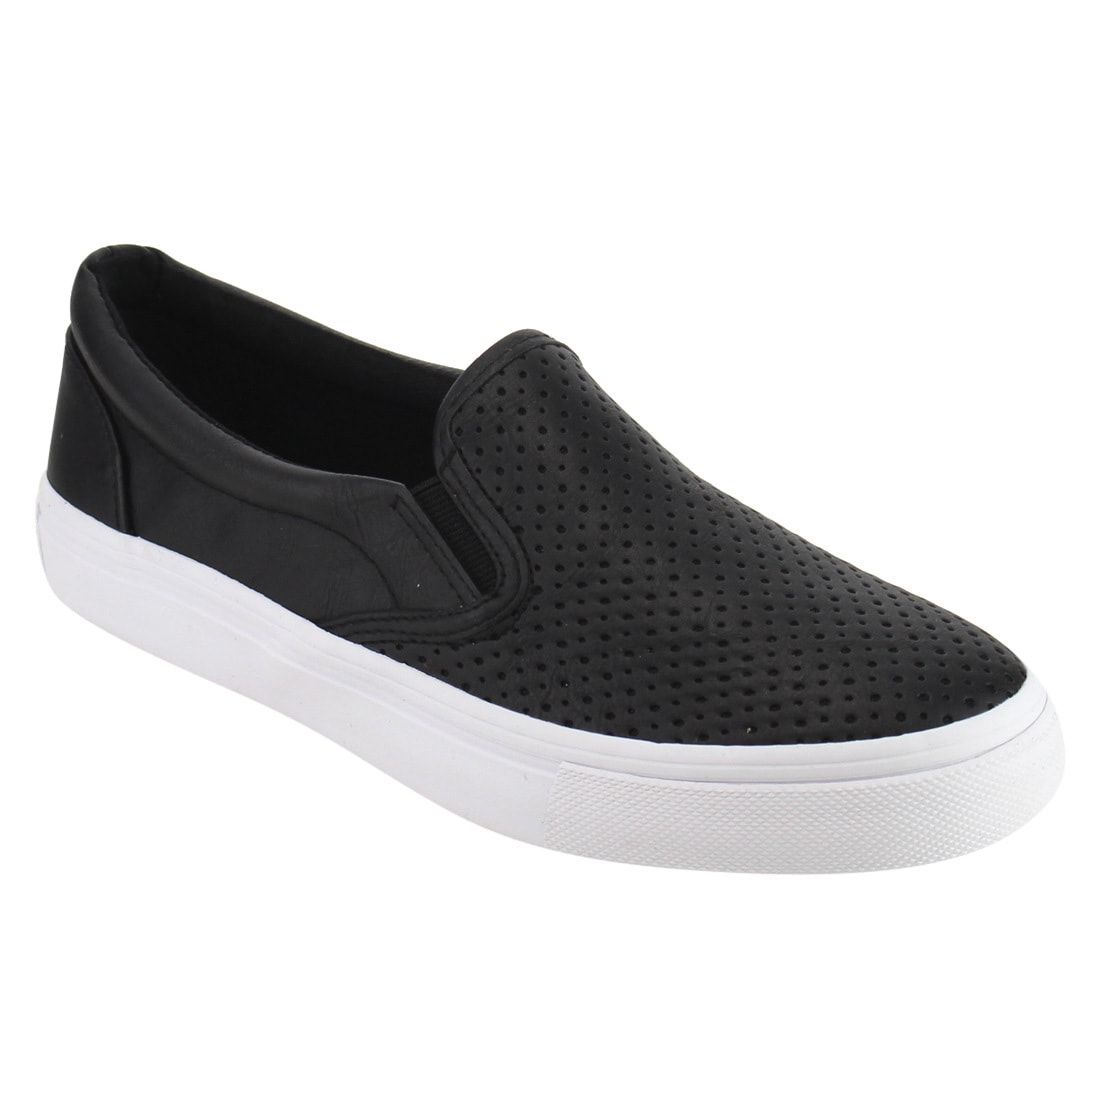 Soda IF14 Women's Perforated Slip On